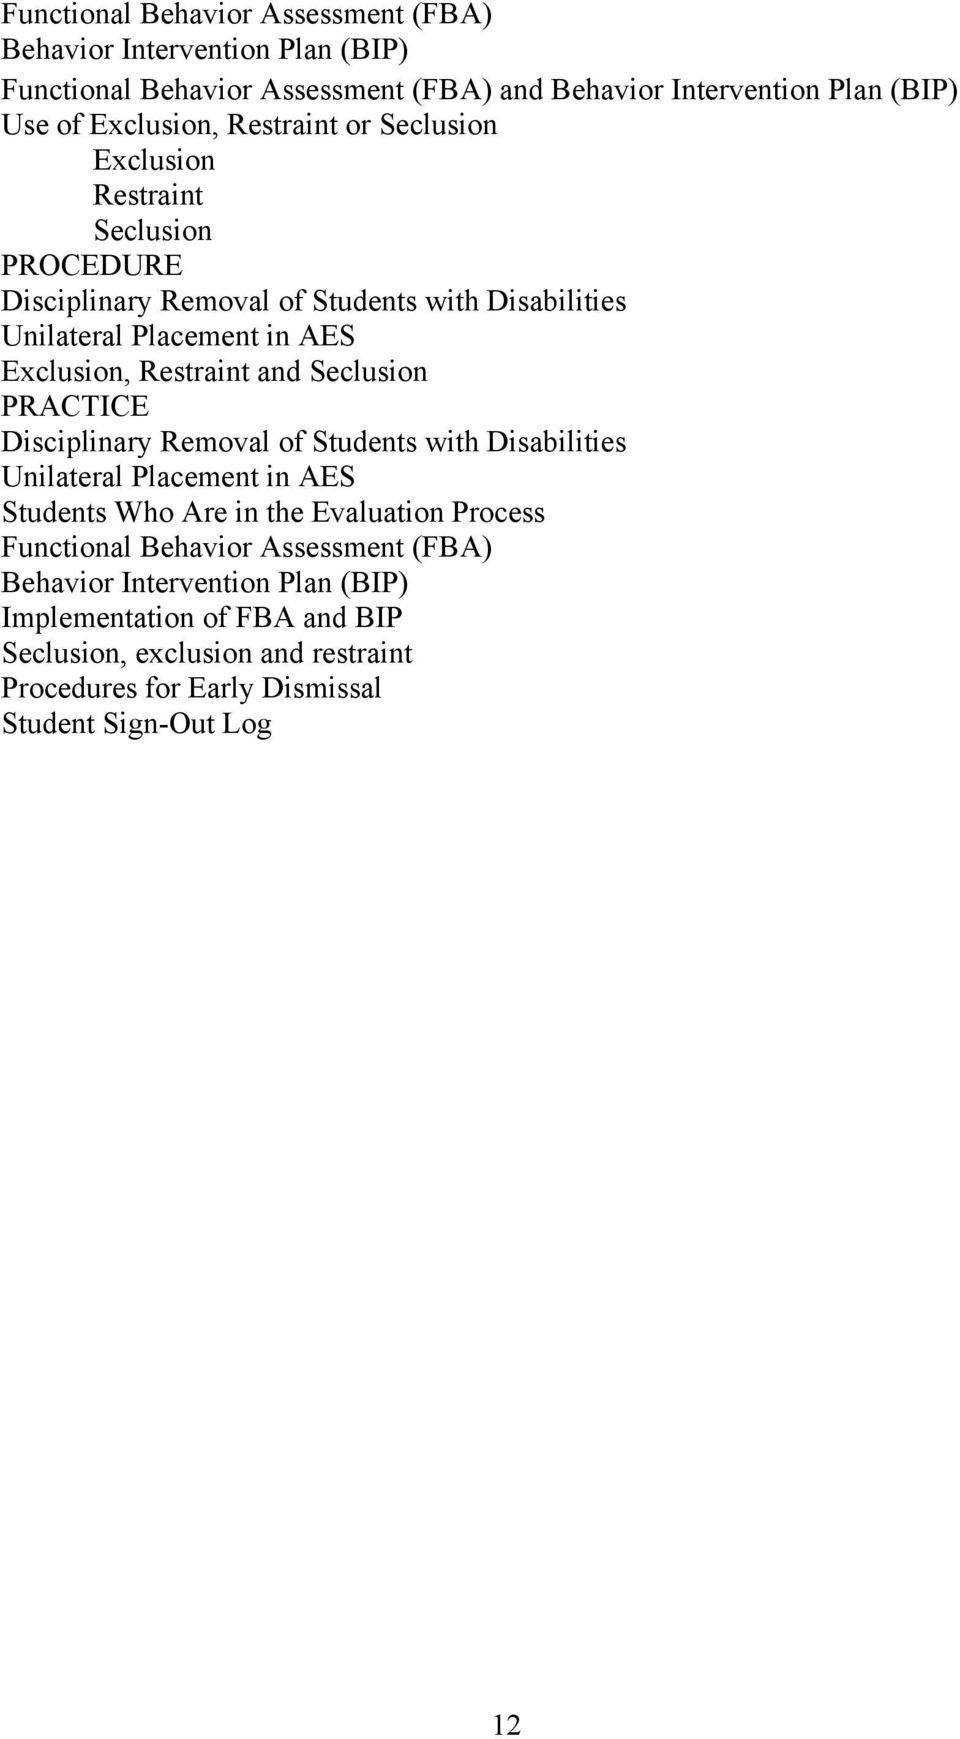 and Seclusion PRACTICE Disciplinary Removal of Students with Disabilities Unilateral Placement in AES Students Who Are in the Evaluation Process Functional Behavior